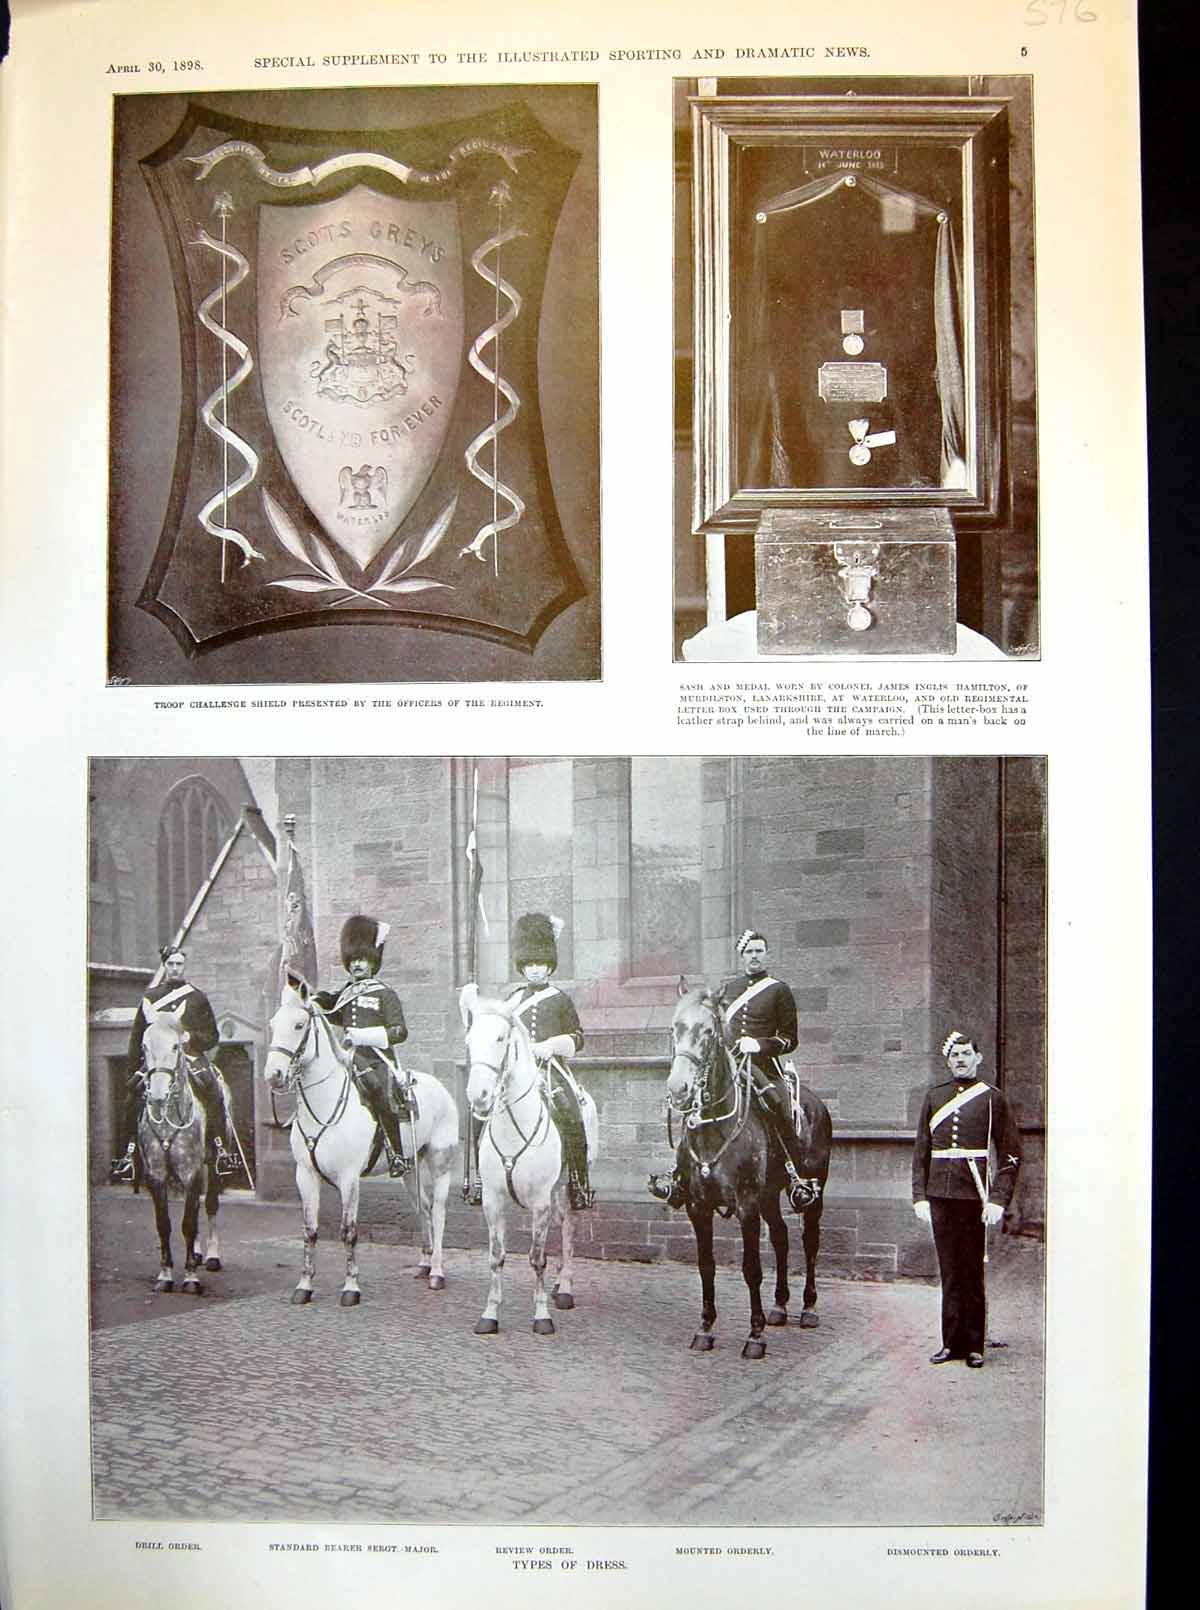 Old-Antique-Print-Royal-Scots-Greys-Challenge-Shield-Dress-Trumpeter-1898-19th